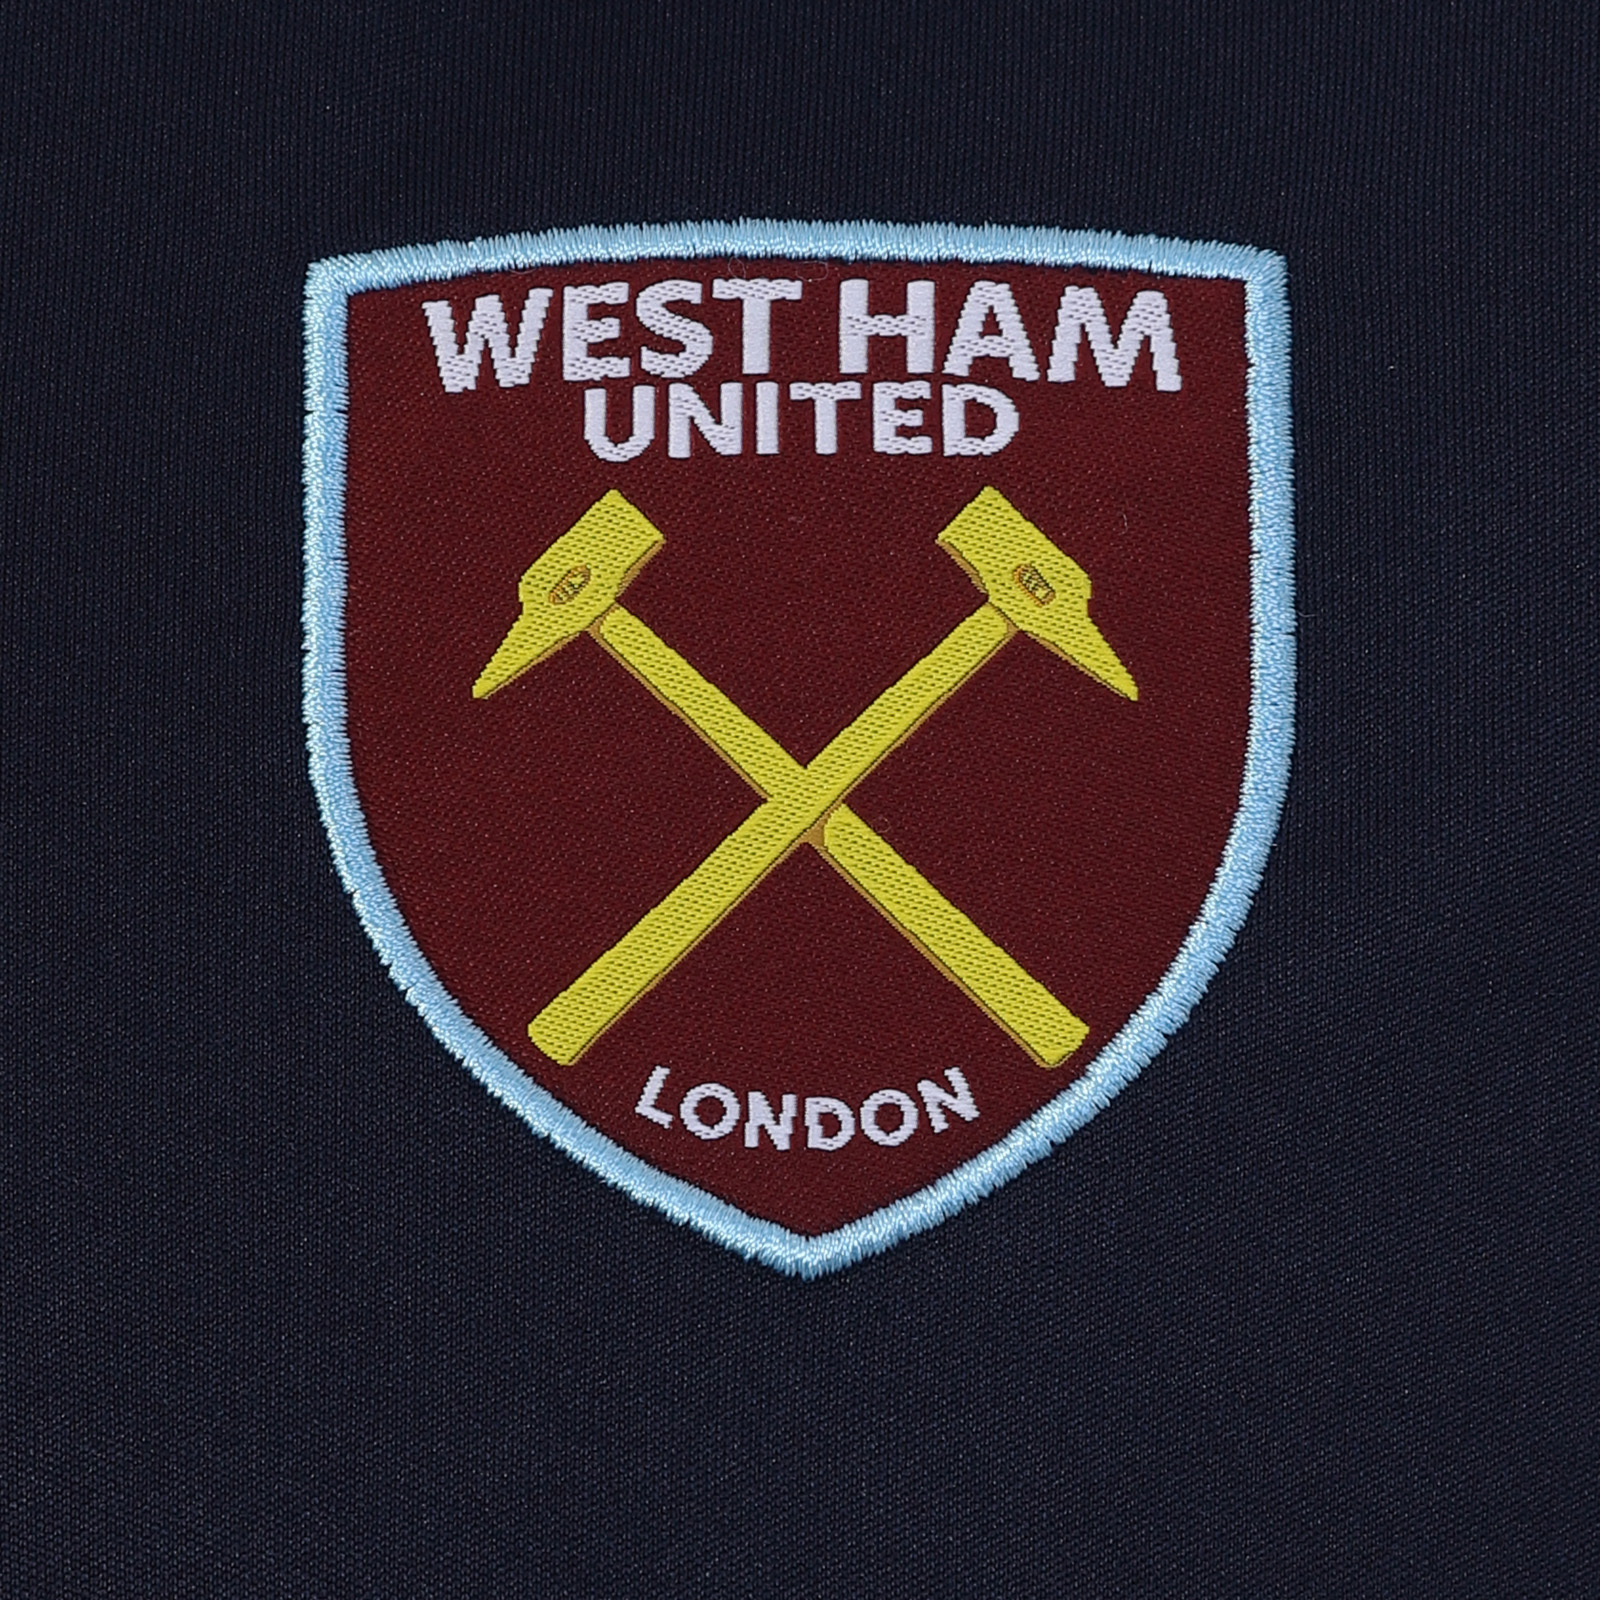 West-Ham-United-FC-Official-Football-Gift-Mens-Poly-Training-Kit-T-Shirt miniatuur 13